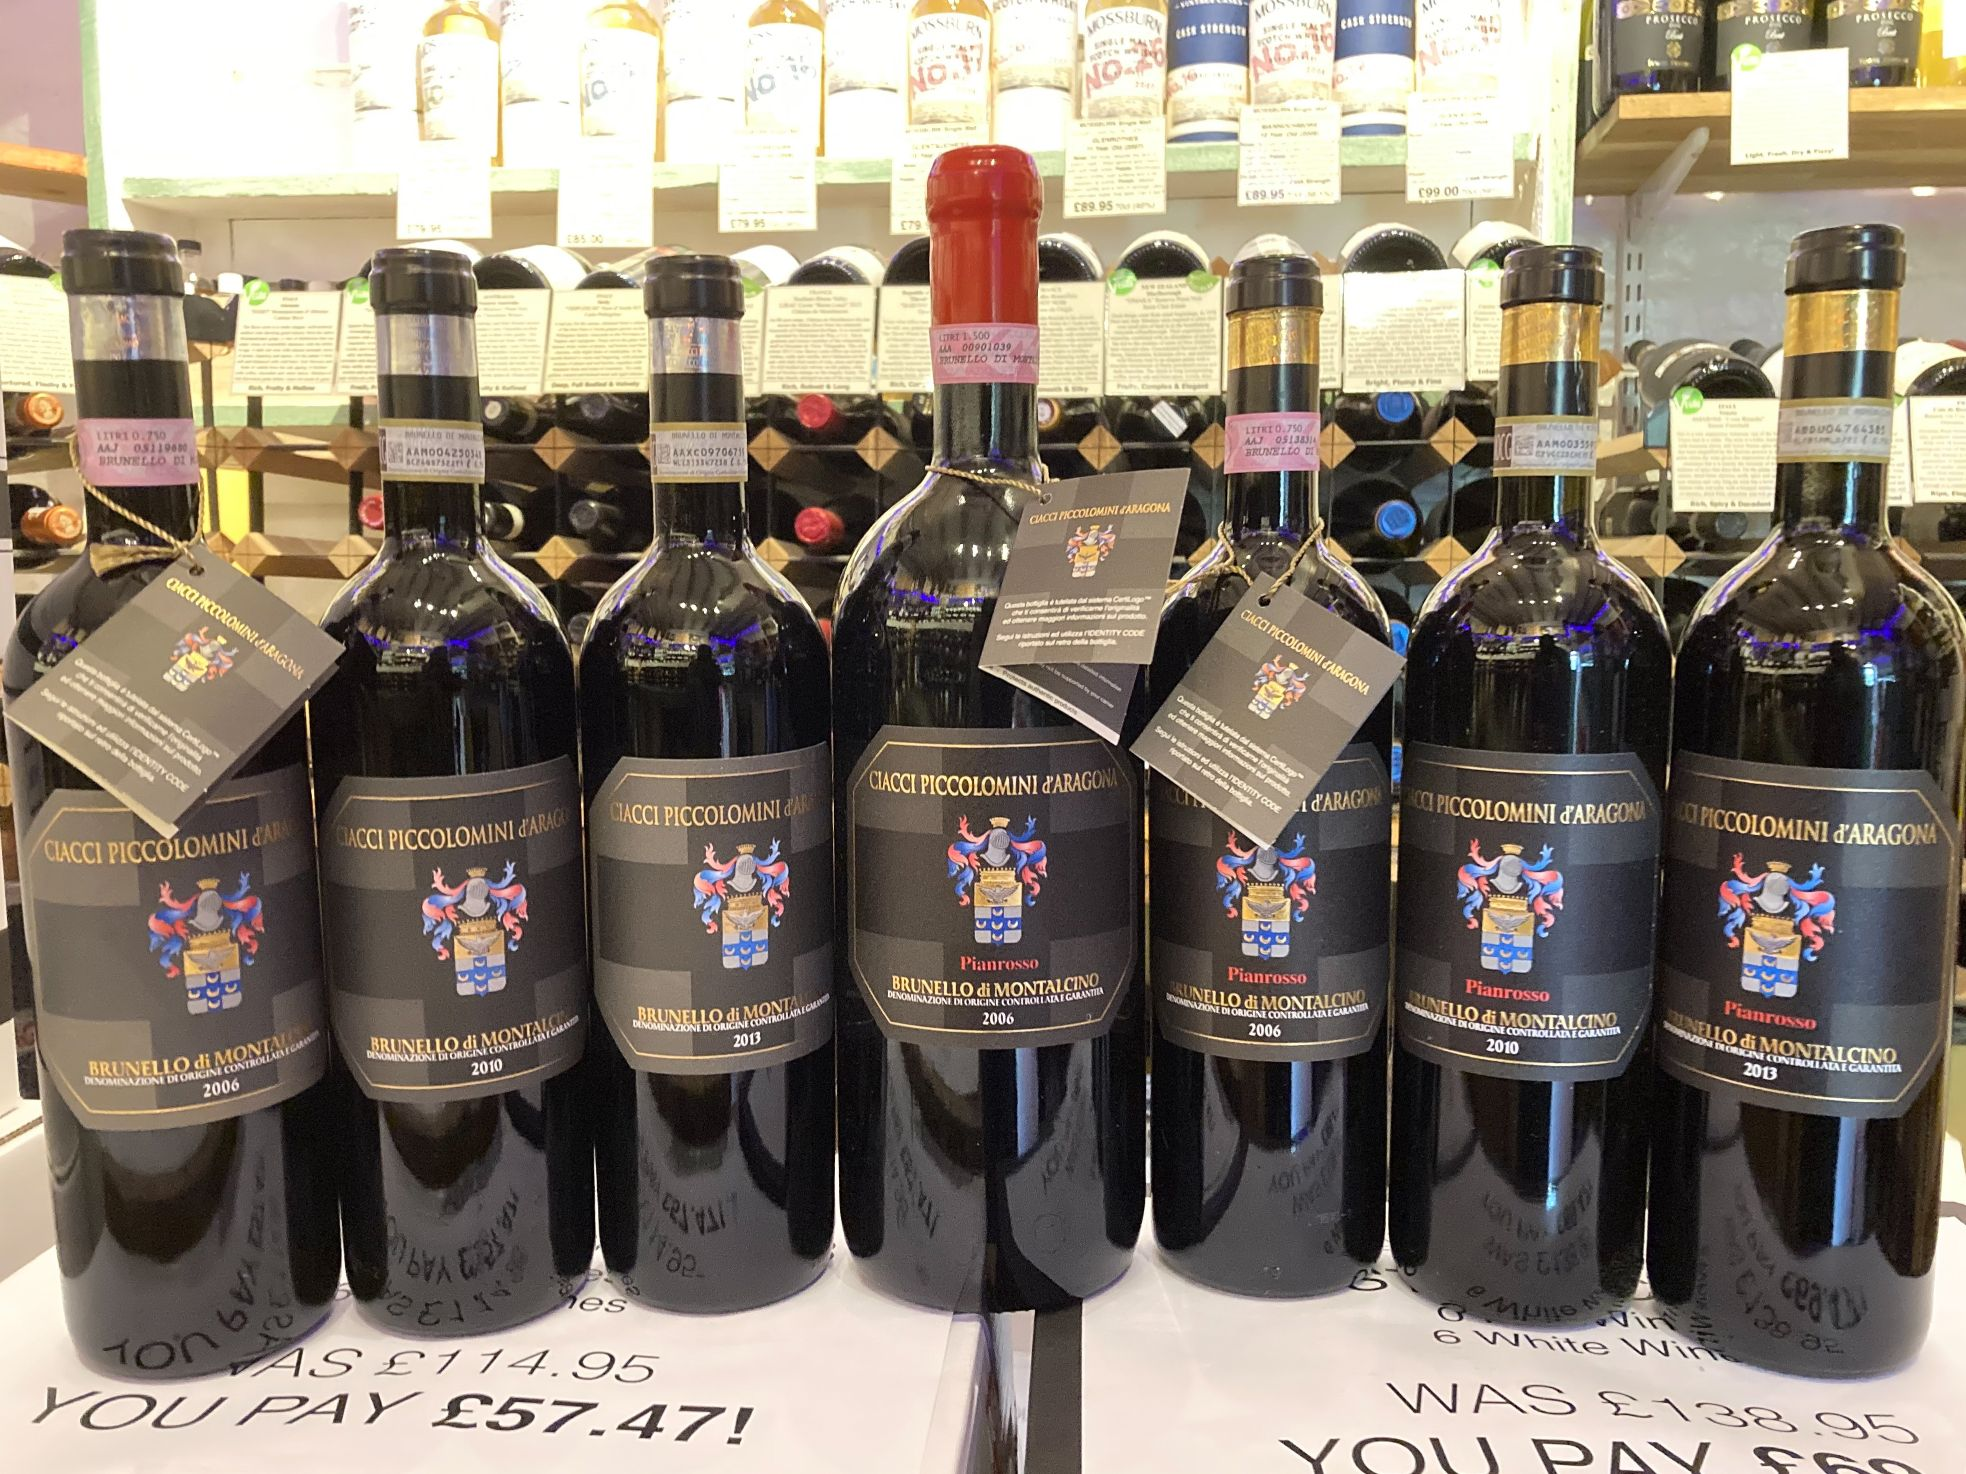 Brunello Ciacci red wine bottles